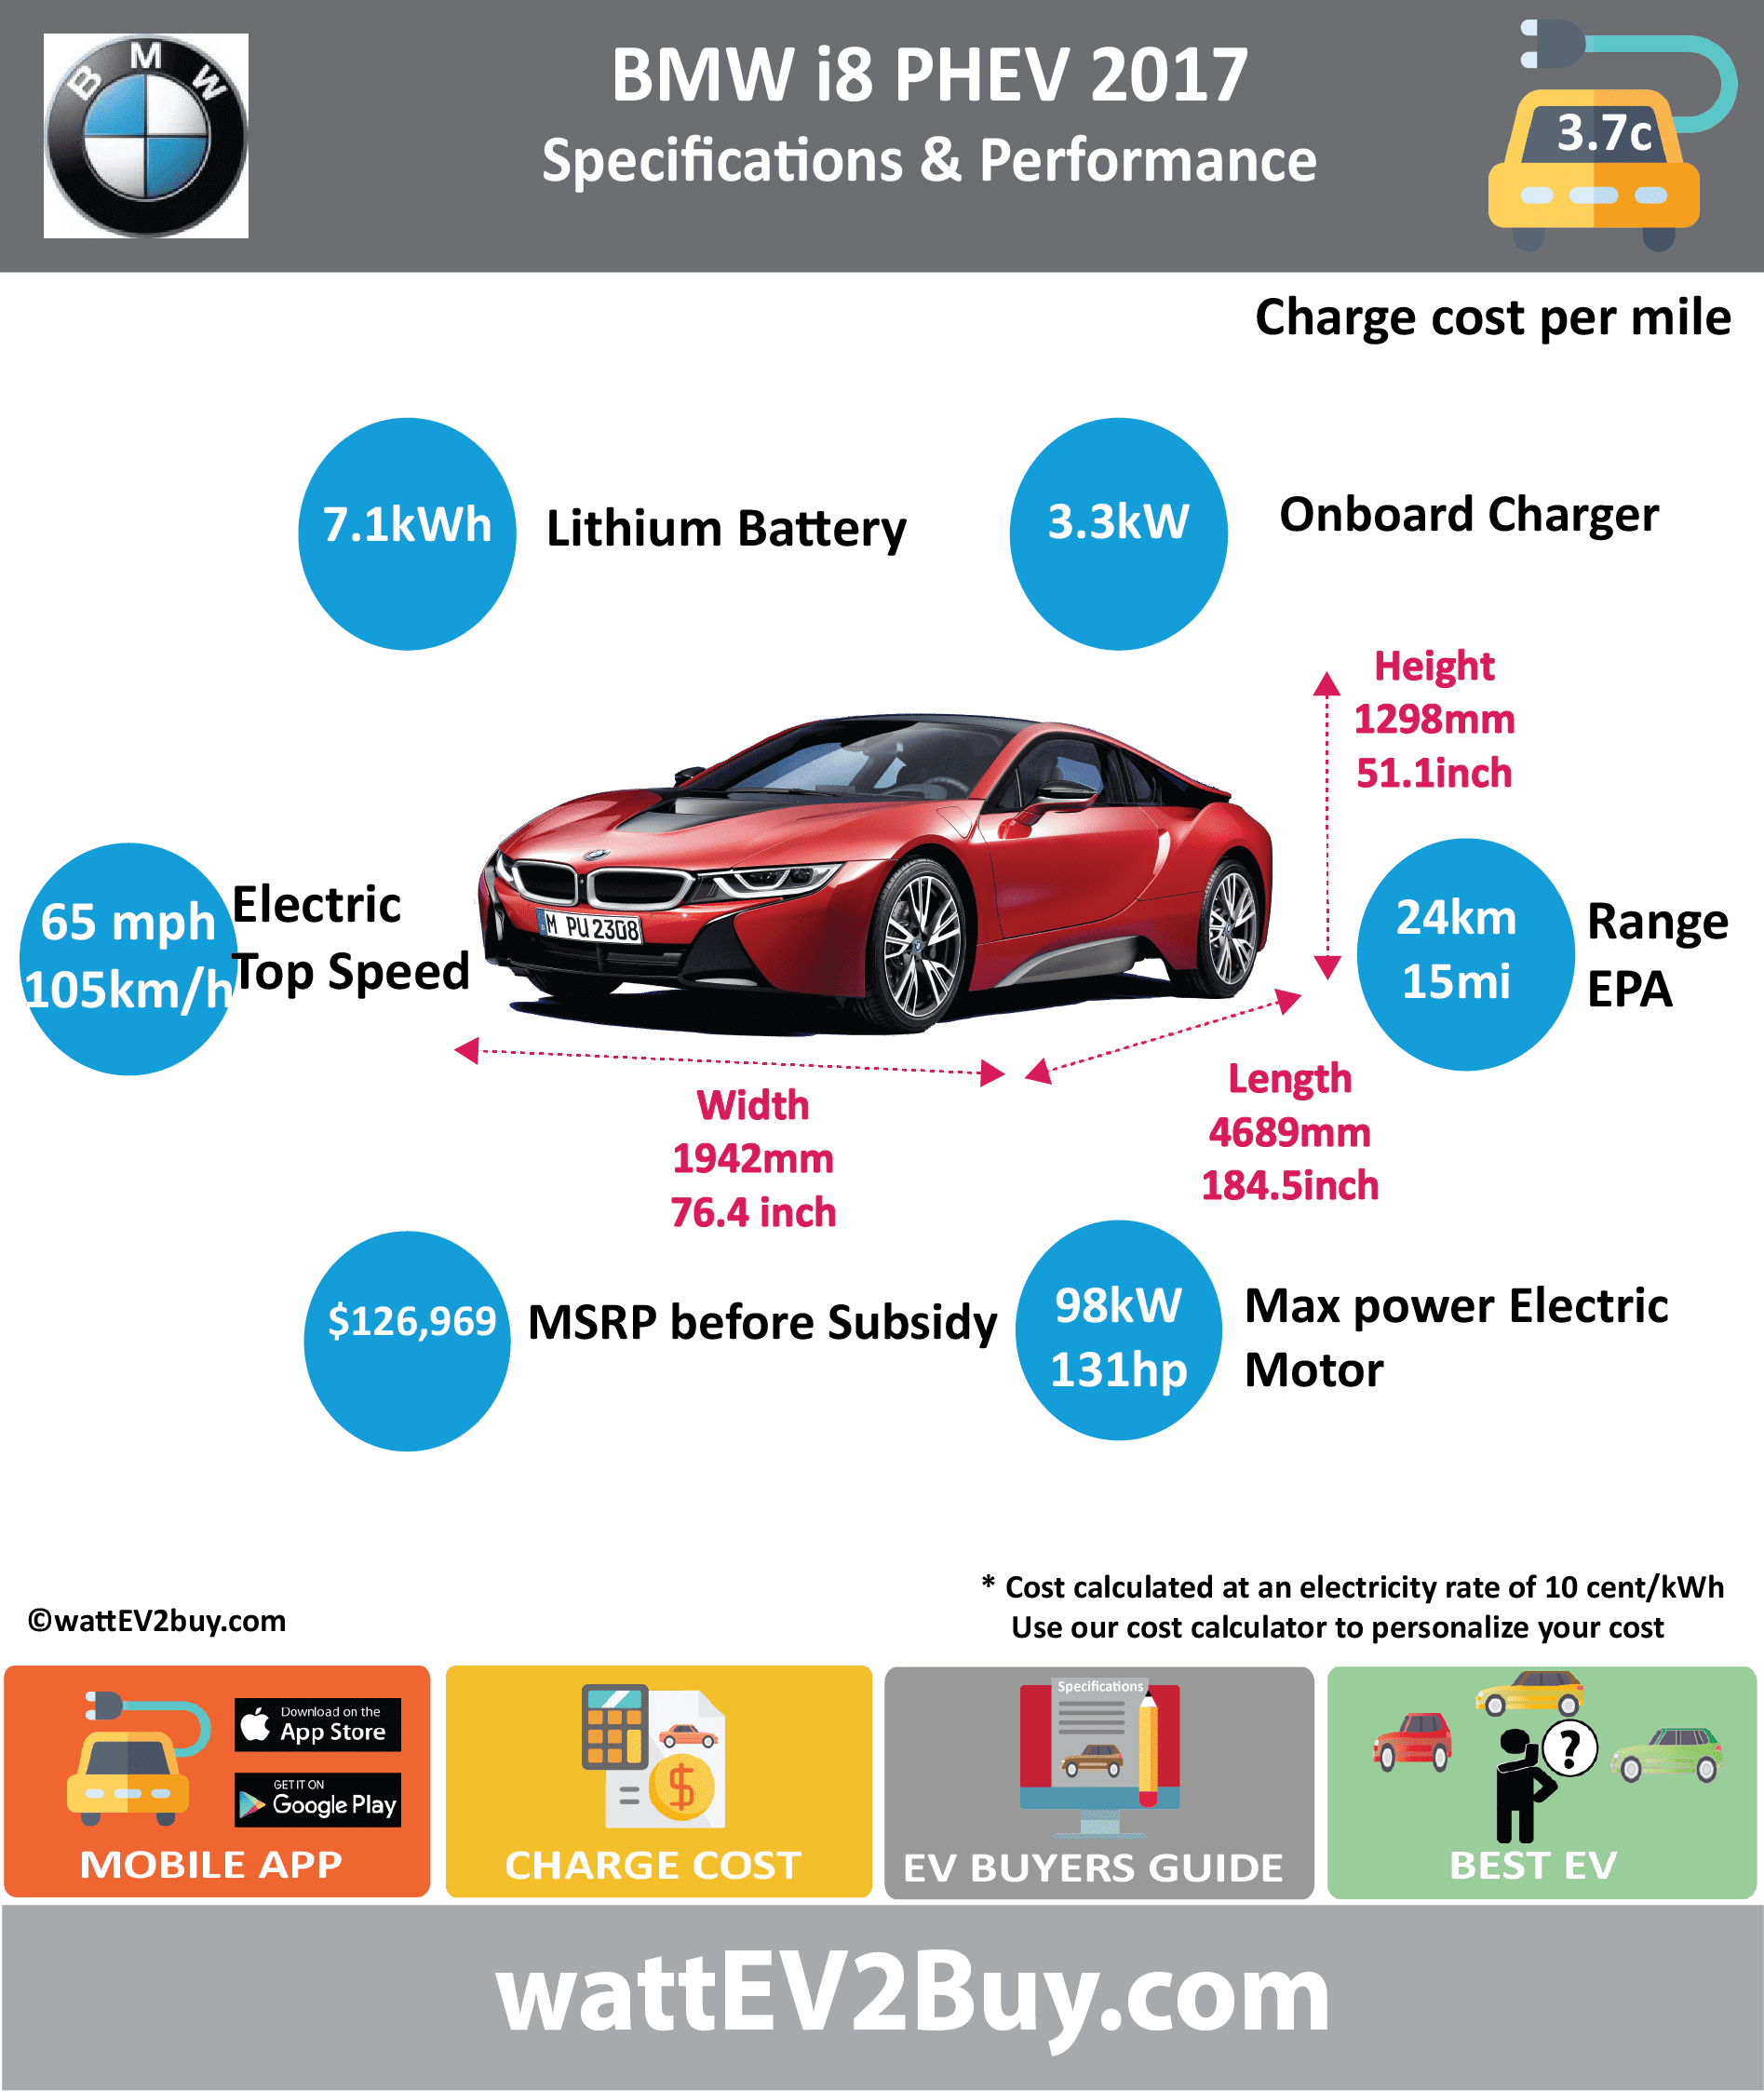 BMW i8 PHEV SPECS wattev2Buy.com 2015 2016 2017 Battery Chemistry Lithium-Ion Battery Capacity kWh 7.1 Battery Nominal rating kWh 5 Voltage V Modules Amps Ah 20 Cells Battery Manufacturer Cooling Battery Warranty - years 8 Battery Warranty - miles 100000 Battery Electric Range - NEDC Mi 23 Battery Electric Range - NEDC km 37 Battery Electric Range - EPA Mi 15.0 Battery Electric Range - EPA km 24 Electric Top Speed - mph Electric Top Speed - km/h Acceleration 0 - 37.2mph sec Onboard Charger kW 3.3 LV 1 Charge kW LV 1 Charge Time (Hours) LV 2 Charge kW LV 2 Charge Time (Hours) 2 LV 3 CCS/Combo kW LV 3 Charge Time (min to 80%) Charge Connector MPGe Combined - miles 76 MPGe Combined - km MPGe City - miles MPGe City - km MPGe Highway - miles MPGe Highway - km Max Power - hp 131 Max Power - kW 98 Max Torque - lb.ft Max Torque - N.m Drivetrain AWD Electric Motor Electric Motor Output kW Electric Motor Output hp Transmission Energy Consumption kWh/100miles Utility Factor 37% MSRP (before incentives & destination) $126,969 Combustion 1.5-liter turbocharged 3-cylinder engine Extended Range - mile 330 Extended Range - km 528 ICE Max Power - hp ICE Max Power - kW ICE Max Torque - lb.ft ICE Max Torque - N.m ICE Top speed - mph 156.3 ICE Top speed - km/h 250 ICE Acceleration 0 - 62mph sec 4.4 ICE MPGe Combined - miles 28 ICE MPGe Combined - km ICE MPGe City - miles ICE MPGe City - km ICE MPGe Highway - miles ICE MPGe Highway - km ICE Transmission ICE Fuel Consumption l/100km 2.1 ICE Emission Rating ICE Emissions CO2/mi grams ICE Emissions CO2/km grams 49.0 Total System Max Power - hp 357 Max Power - kW Max Torque - lb.ft 420 Max Torque - N.m ICE Acceleration 0 - 60mph sec Fuel Consumption l/100km MPGe Combined - miles 76 Vehicle Doors 2 Seating 4 Dimensions GVWR (kg) 4090 Curb Weight (lb) 3394 Fuel tank (gal) 11.1 Luggage (L) 133 Ground Clearance (mm) Lenght (mm) 4689 Width (mm) 1942 Height (mm) 1298 Wheelbase (mm) 2800 Lenght (inc) 184.5 Width (inc) 76.4 Height (inc) 51.1 Wheelbase (inc) 110.1 Other